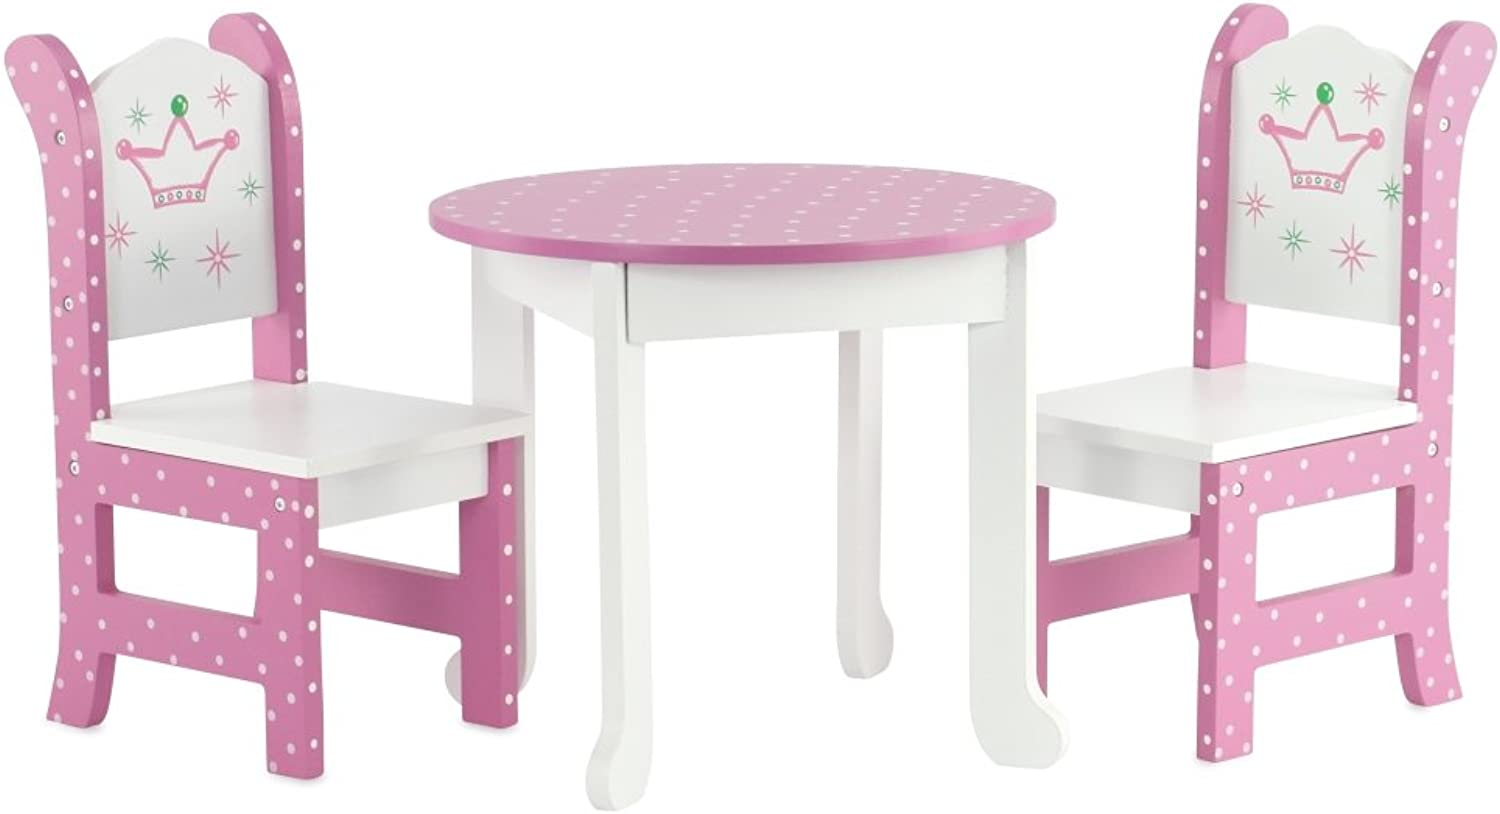 46cm Doll Furniture Fits American Girl Dolls  46cm Wish Crown Table and Chairs